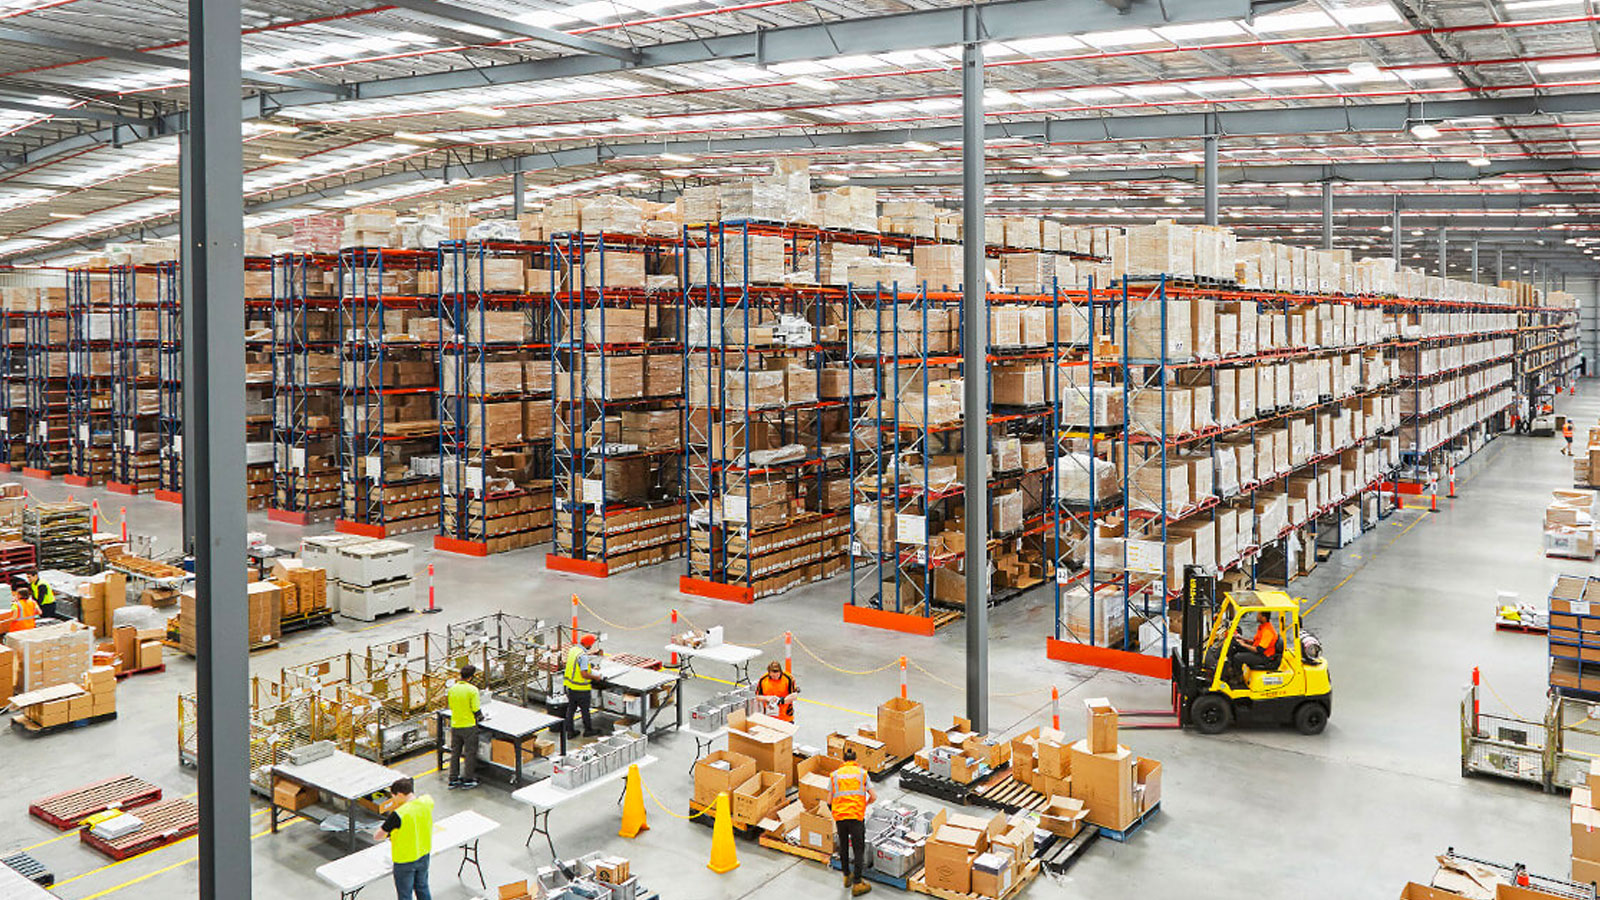 ▲ More than $8 billion has been invested in Australia's booming industrial market this year.